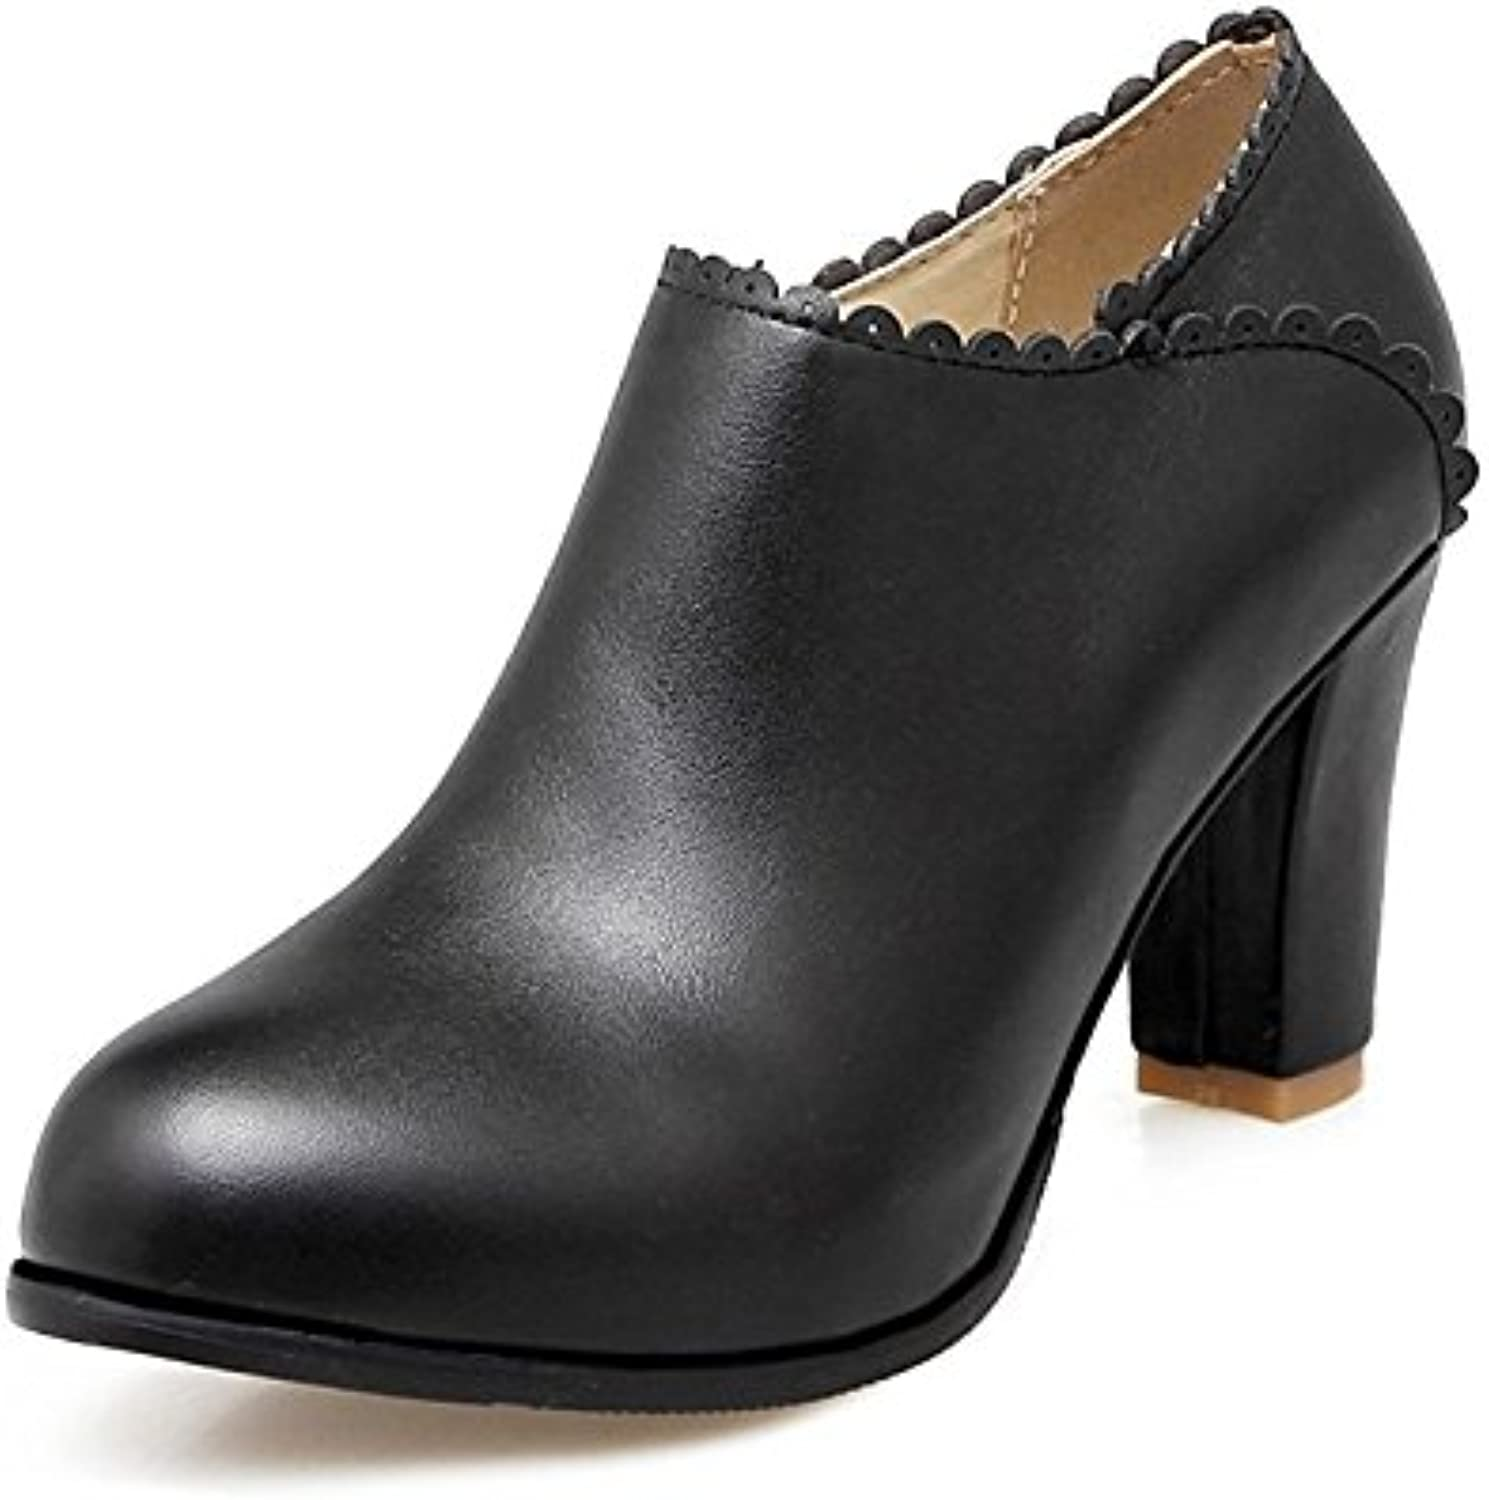 HSXZ Women's shoes Leatherette Spring Fall Bootie Boots Chunky Heel Round Toe Booties Ankle Boots for Wedding Office\Career Pink Black White